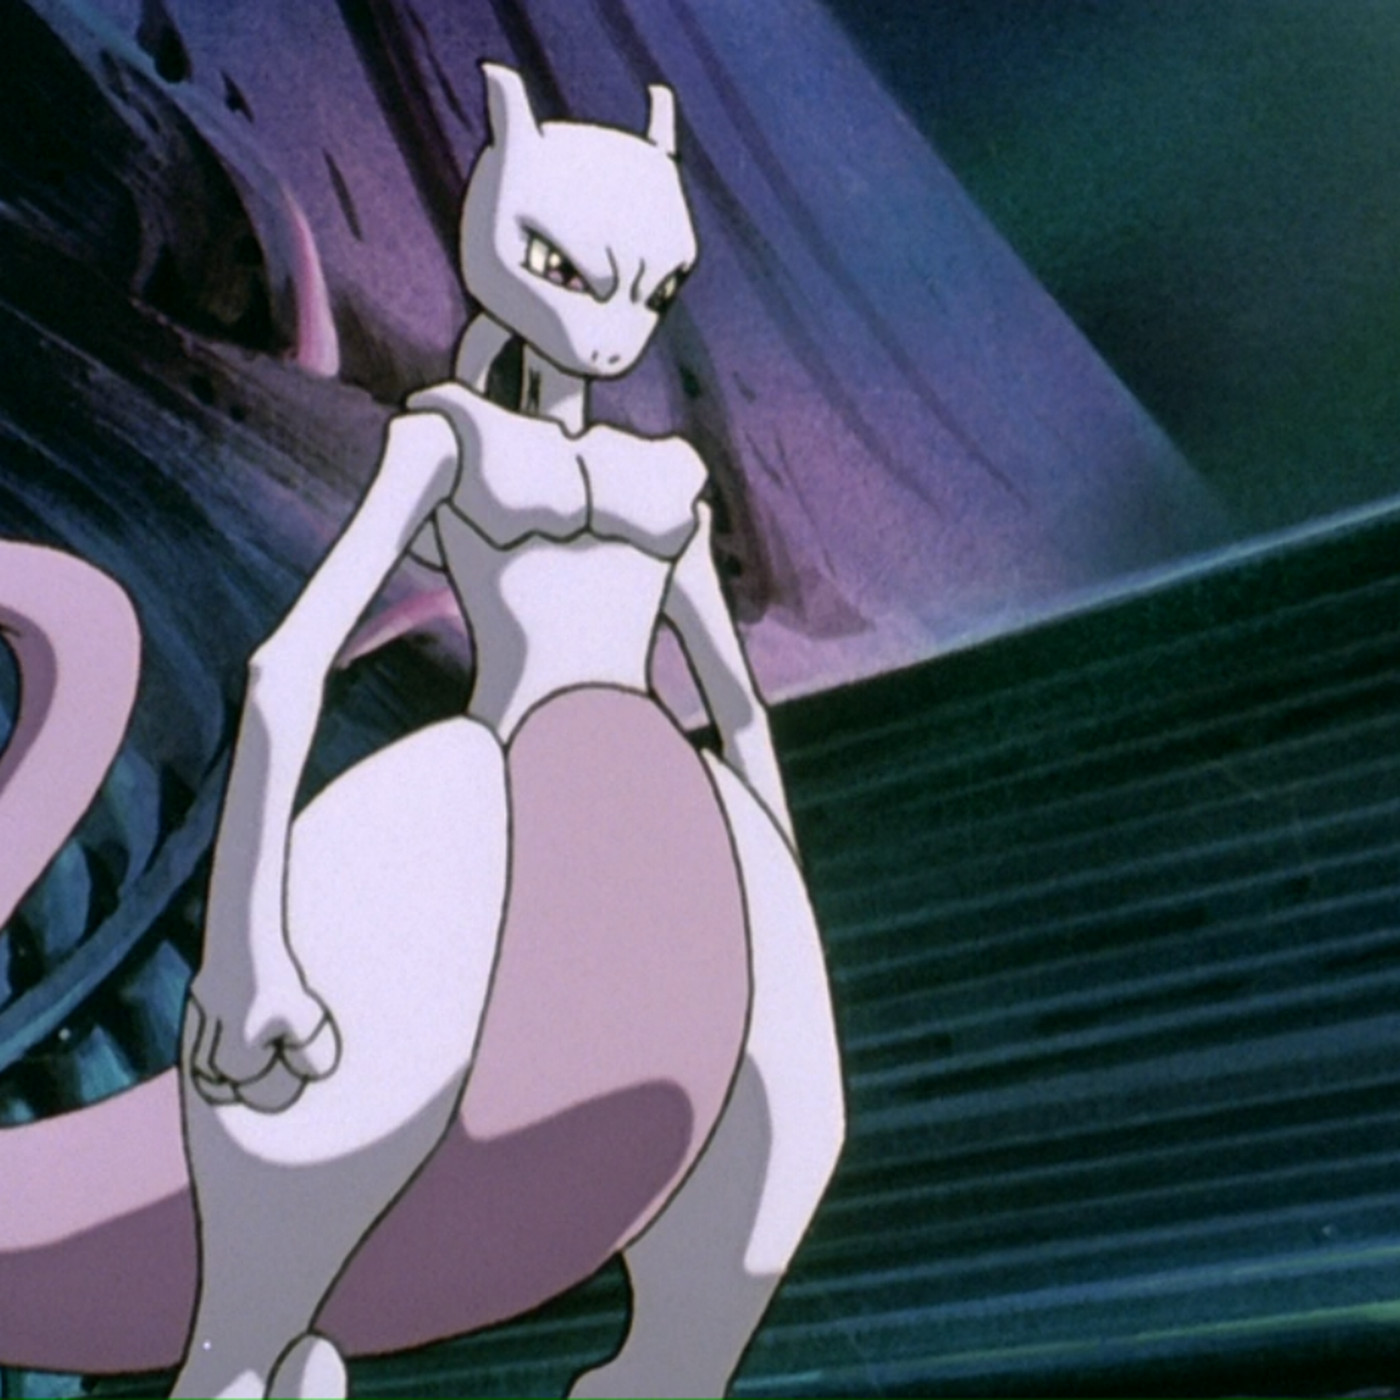 Mewtwo_M01.0.0.png